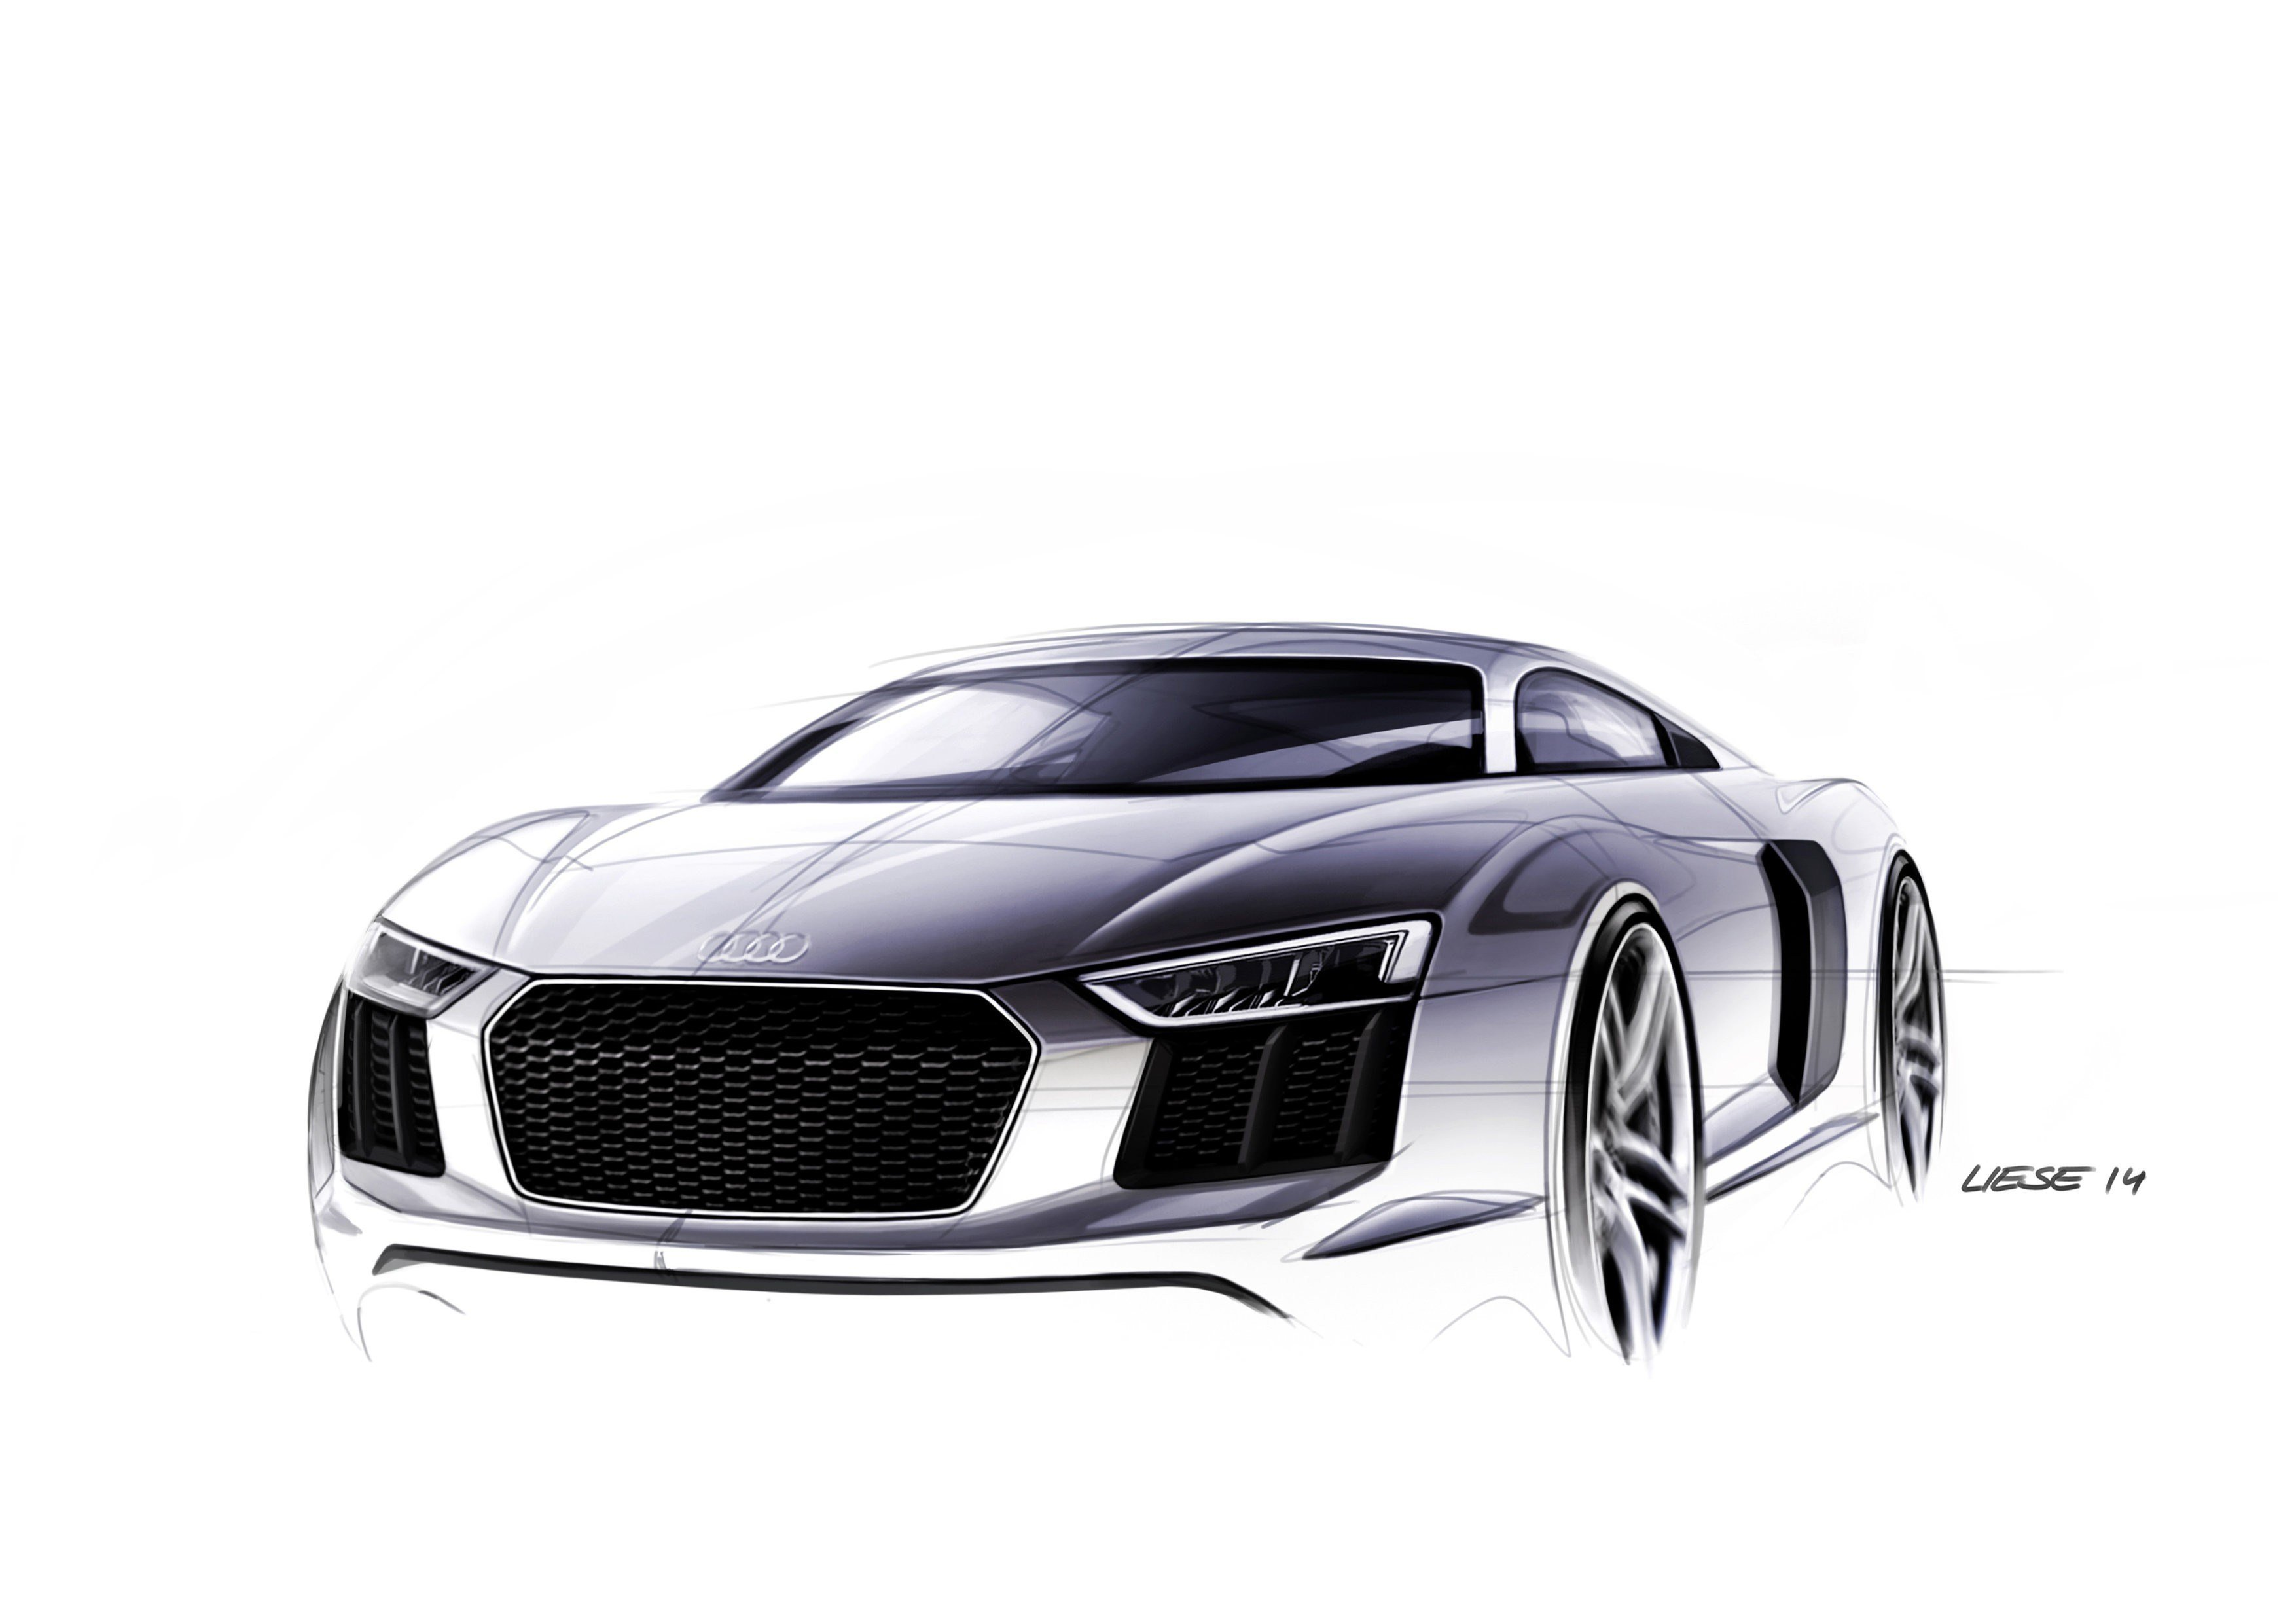 Latest 2016 Audi R8 Design Sketches Are Something To Geek Over Free Download